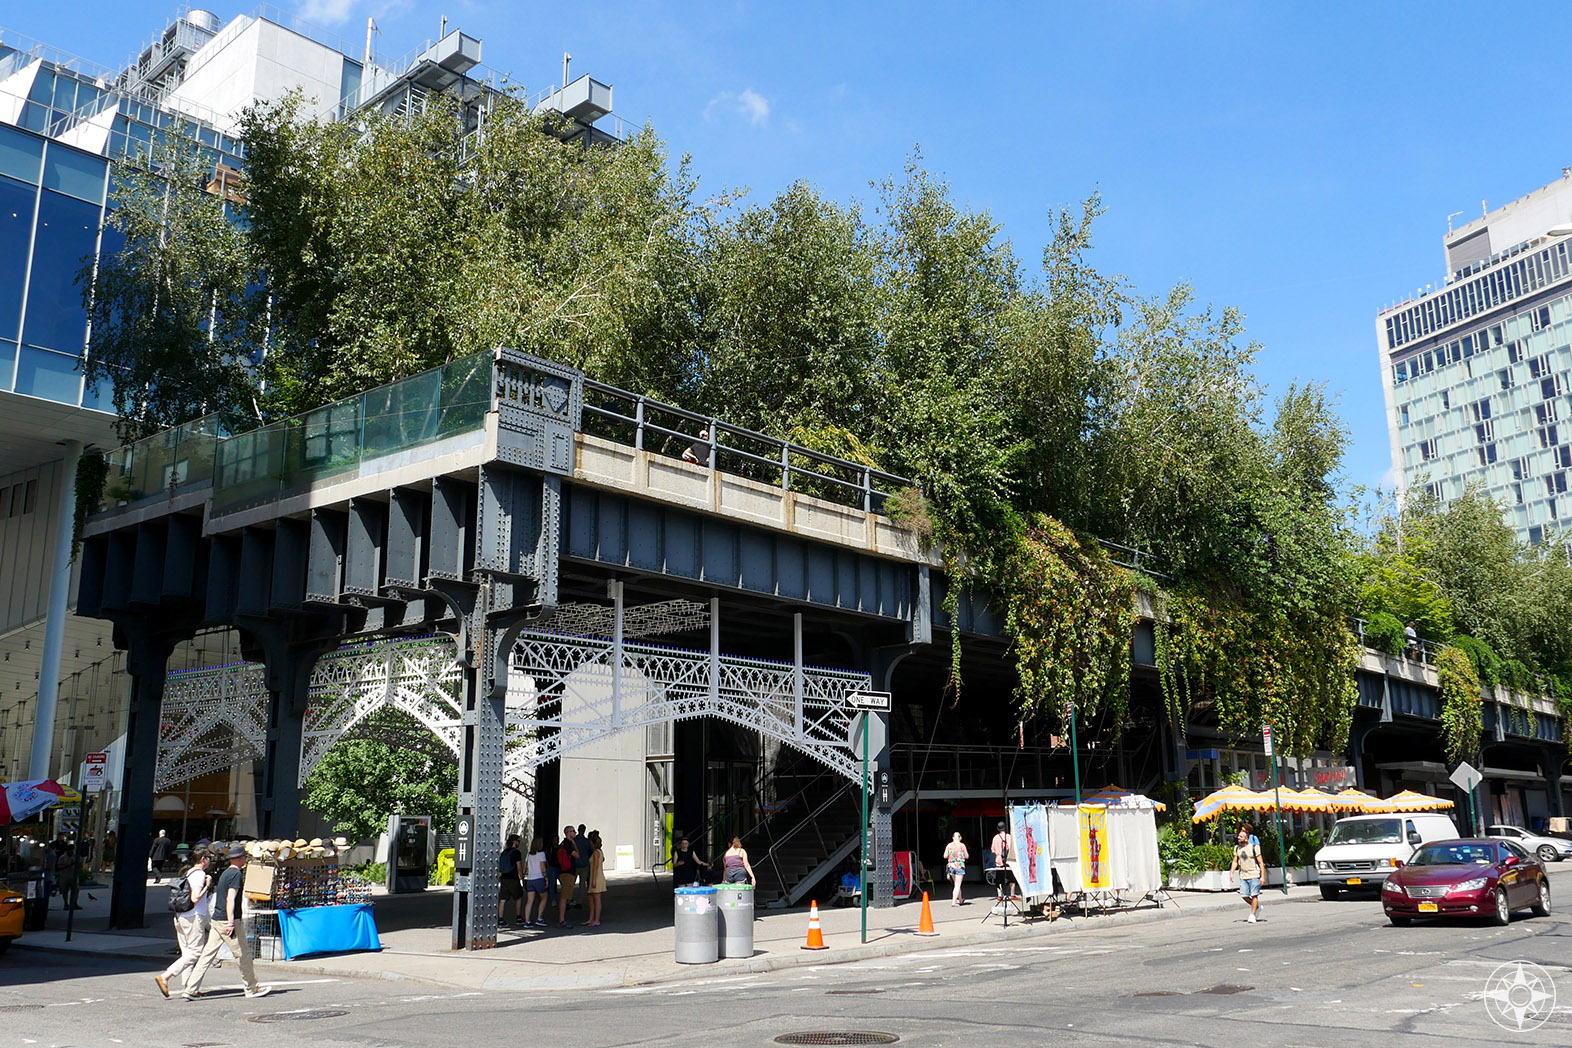 South end and entrance of The High Line at Gansevoort Street in the Meatpacking District.